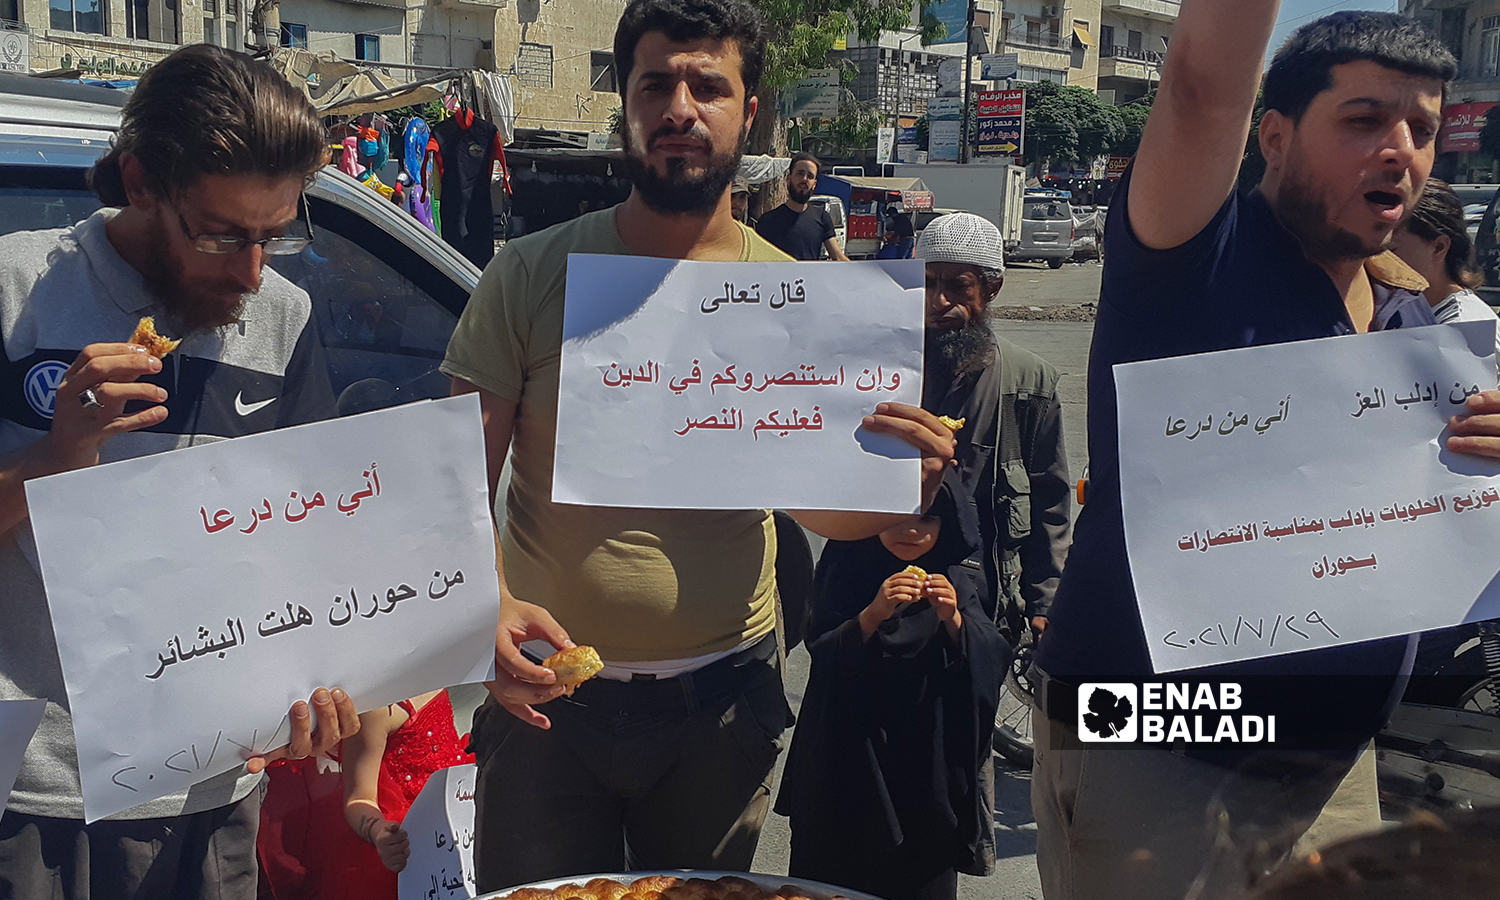 A group of young men carrying banners in solidarity with Daraa residents, and offering sweet desserts after the military checkpoints of the Syrian regime were erected - 29 July 2021 (Enab Baladi-Anas al-Khouli)